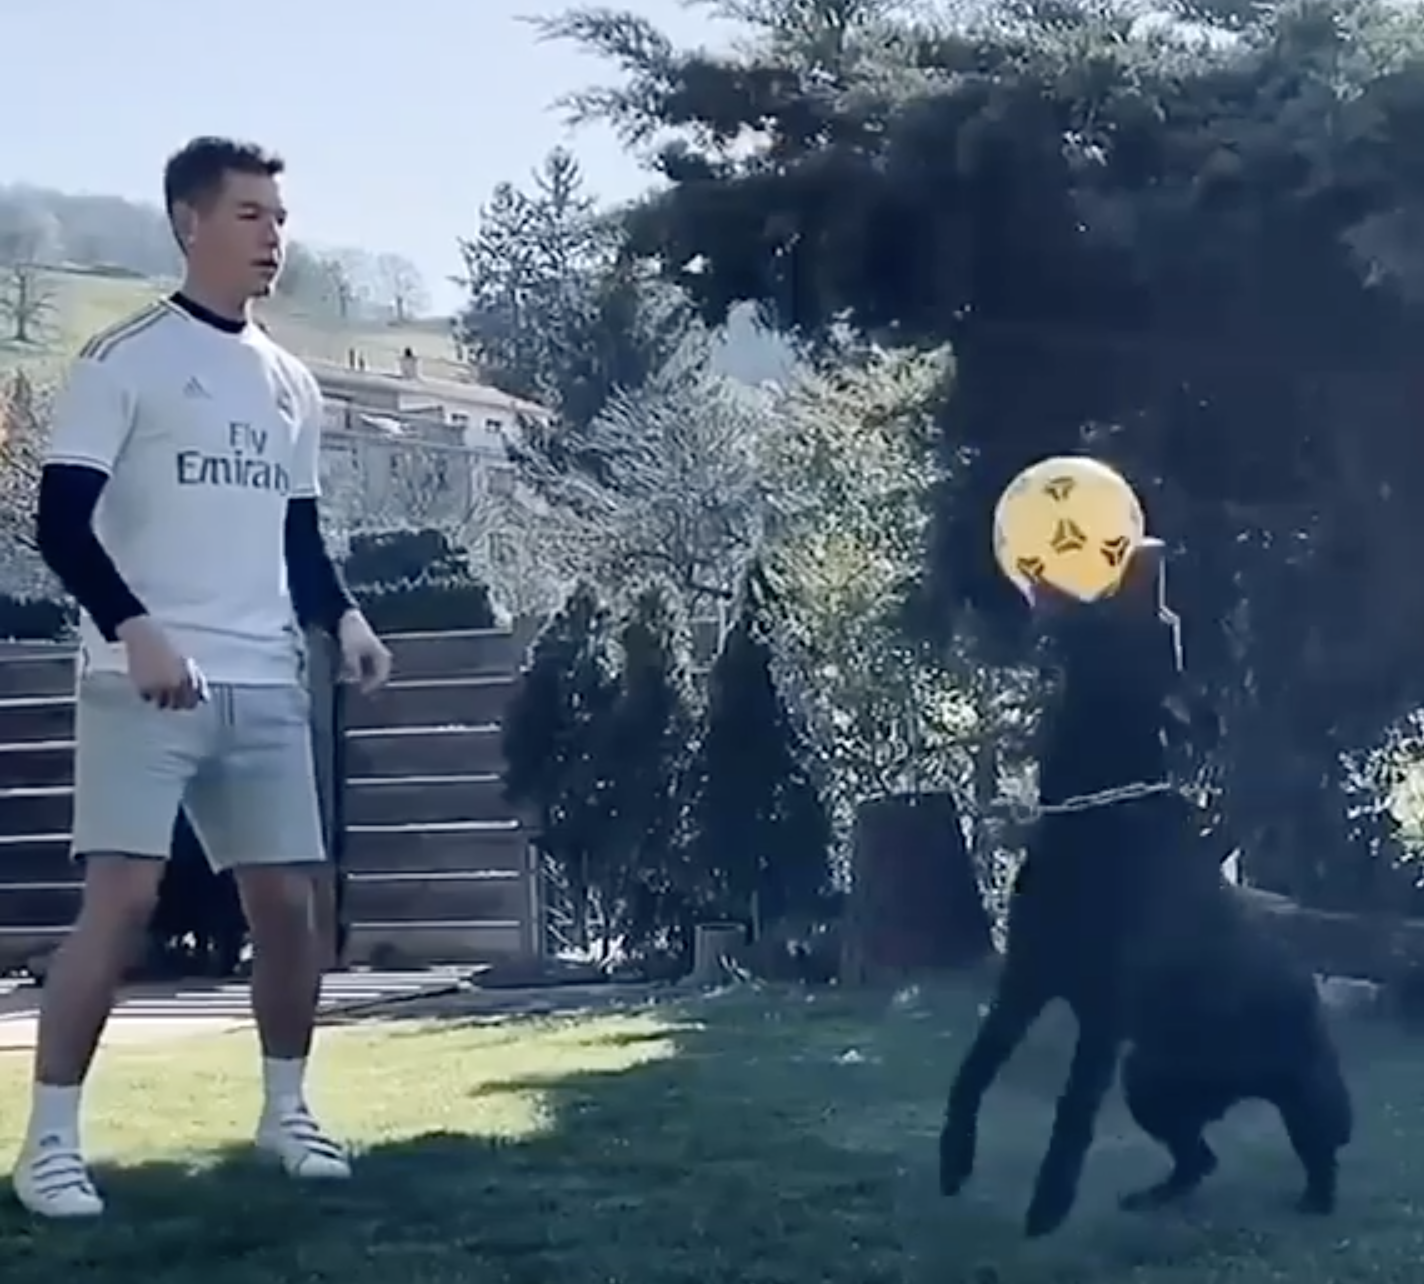 Serbian soccer player Luka Jovic juggling a soccer ball with his dog in his backyard.